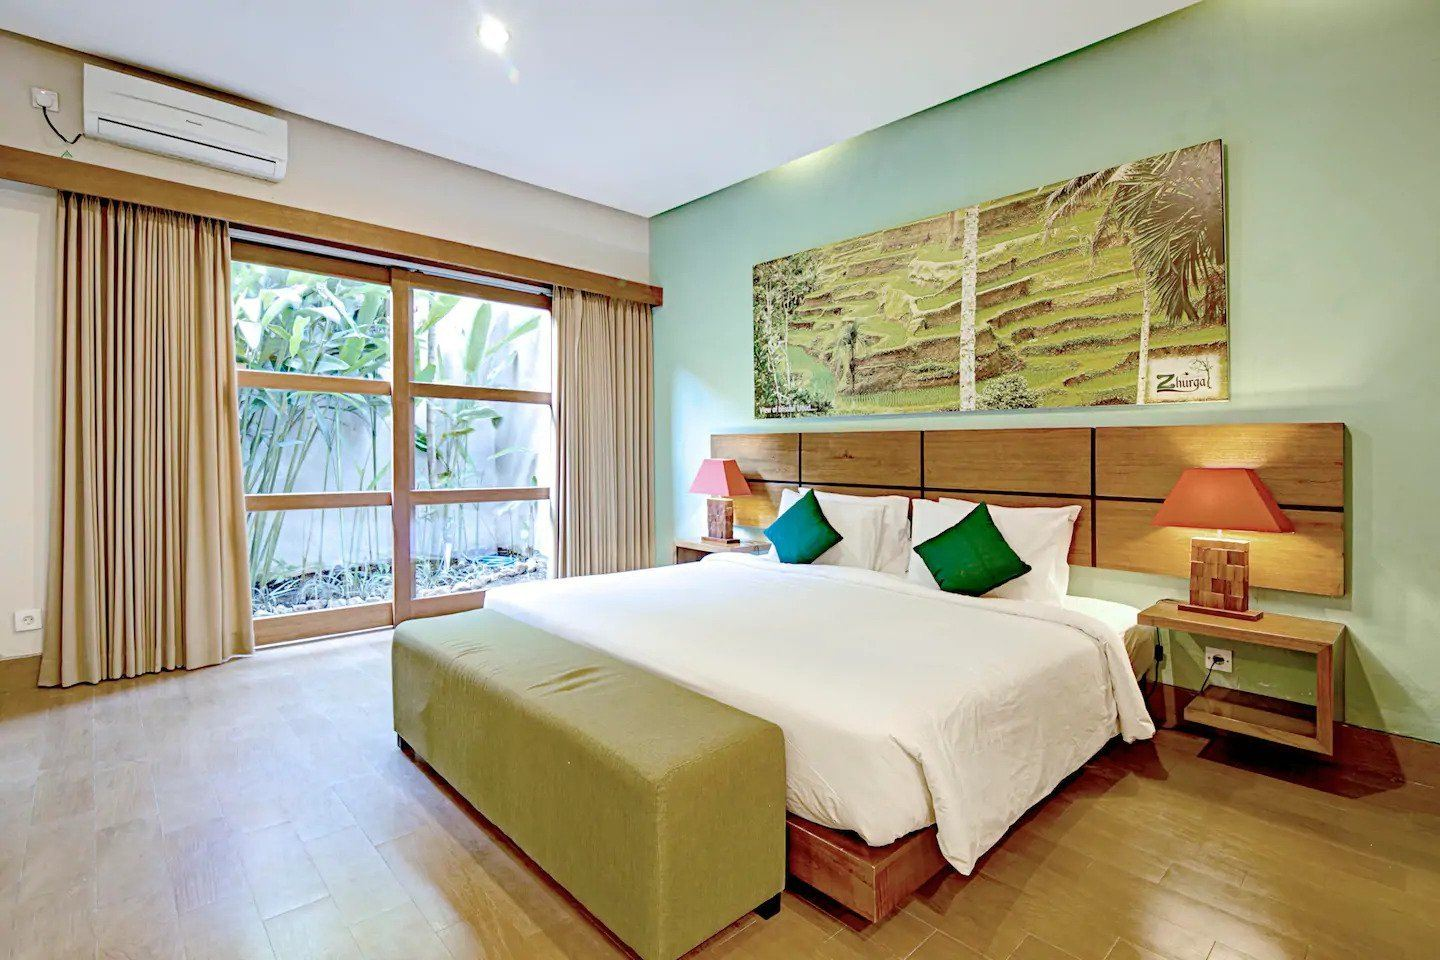 Bali accommodation prices